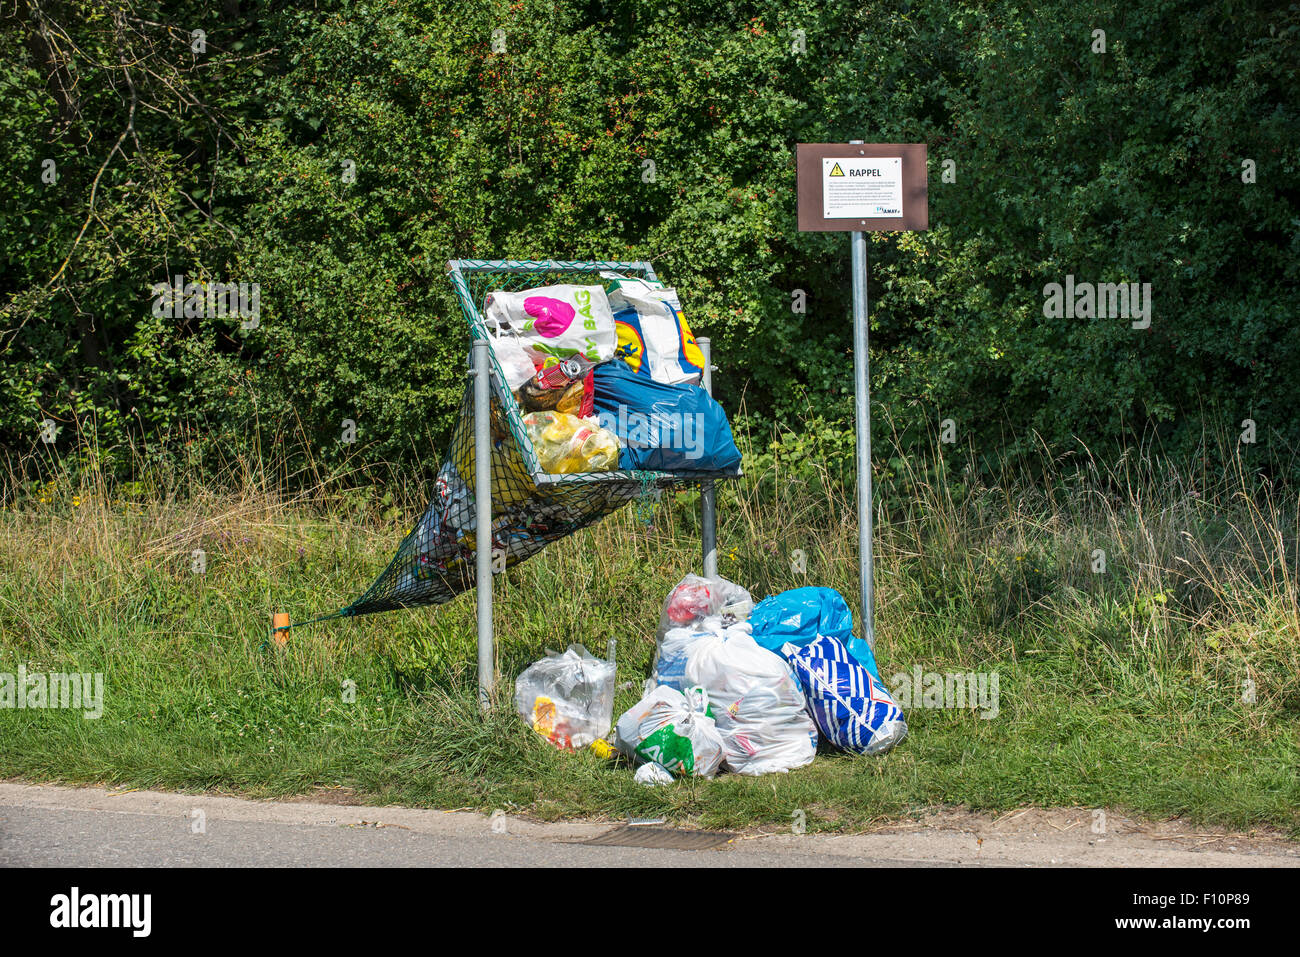 Illegal dumping of household refuse bags in net along roadside meant for throwing in cans and plastic bottles - Stock Image